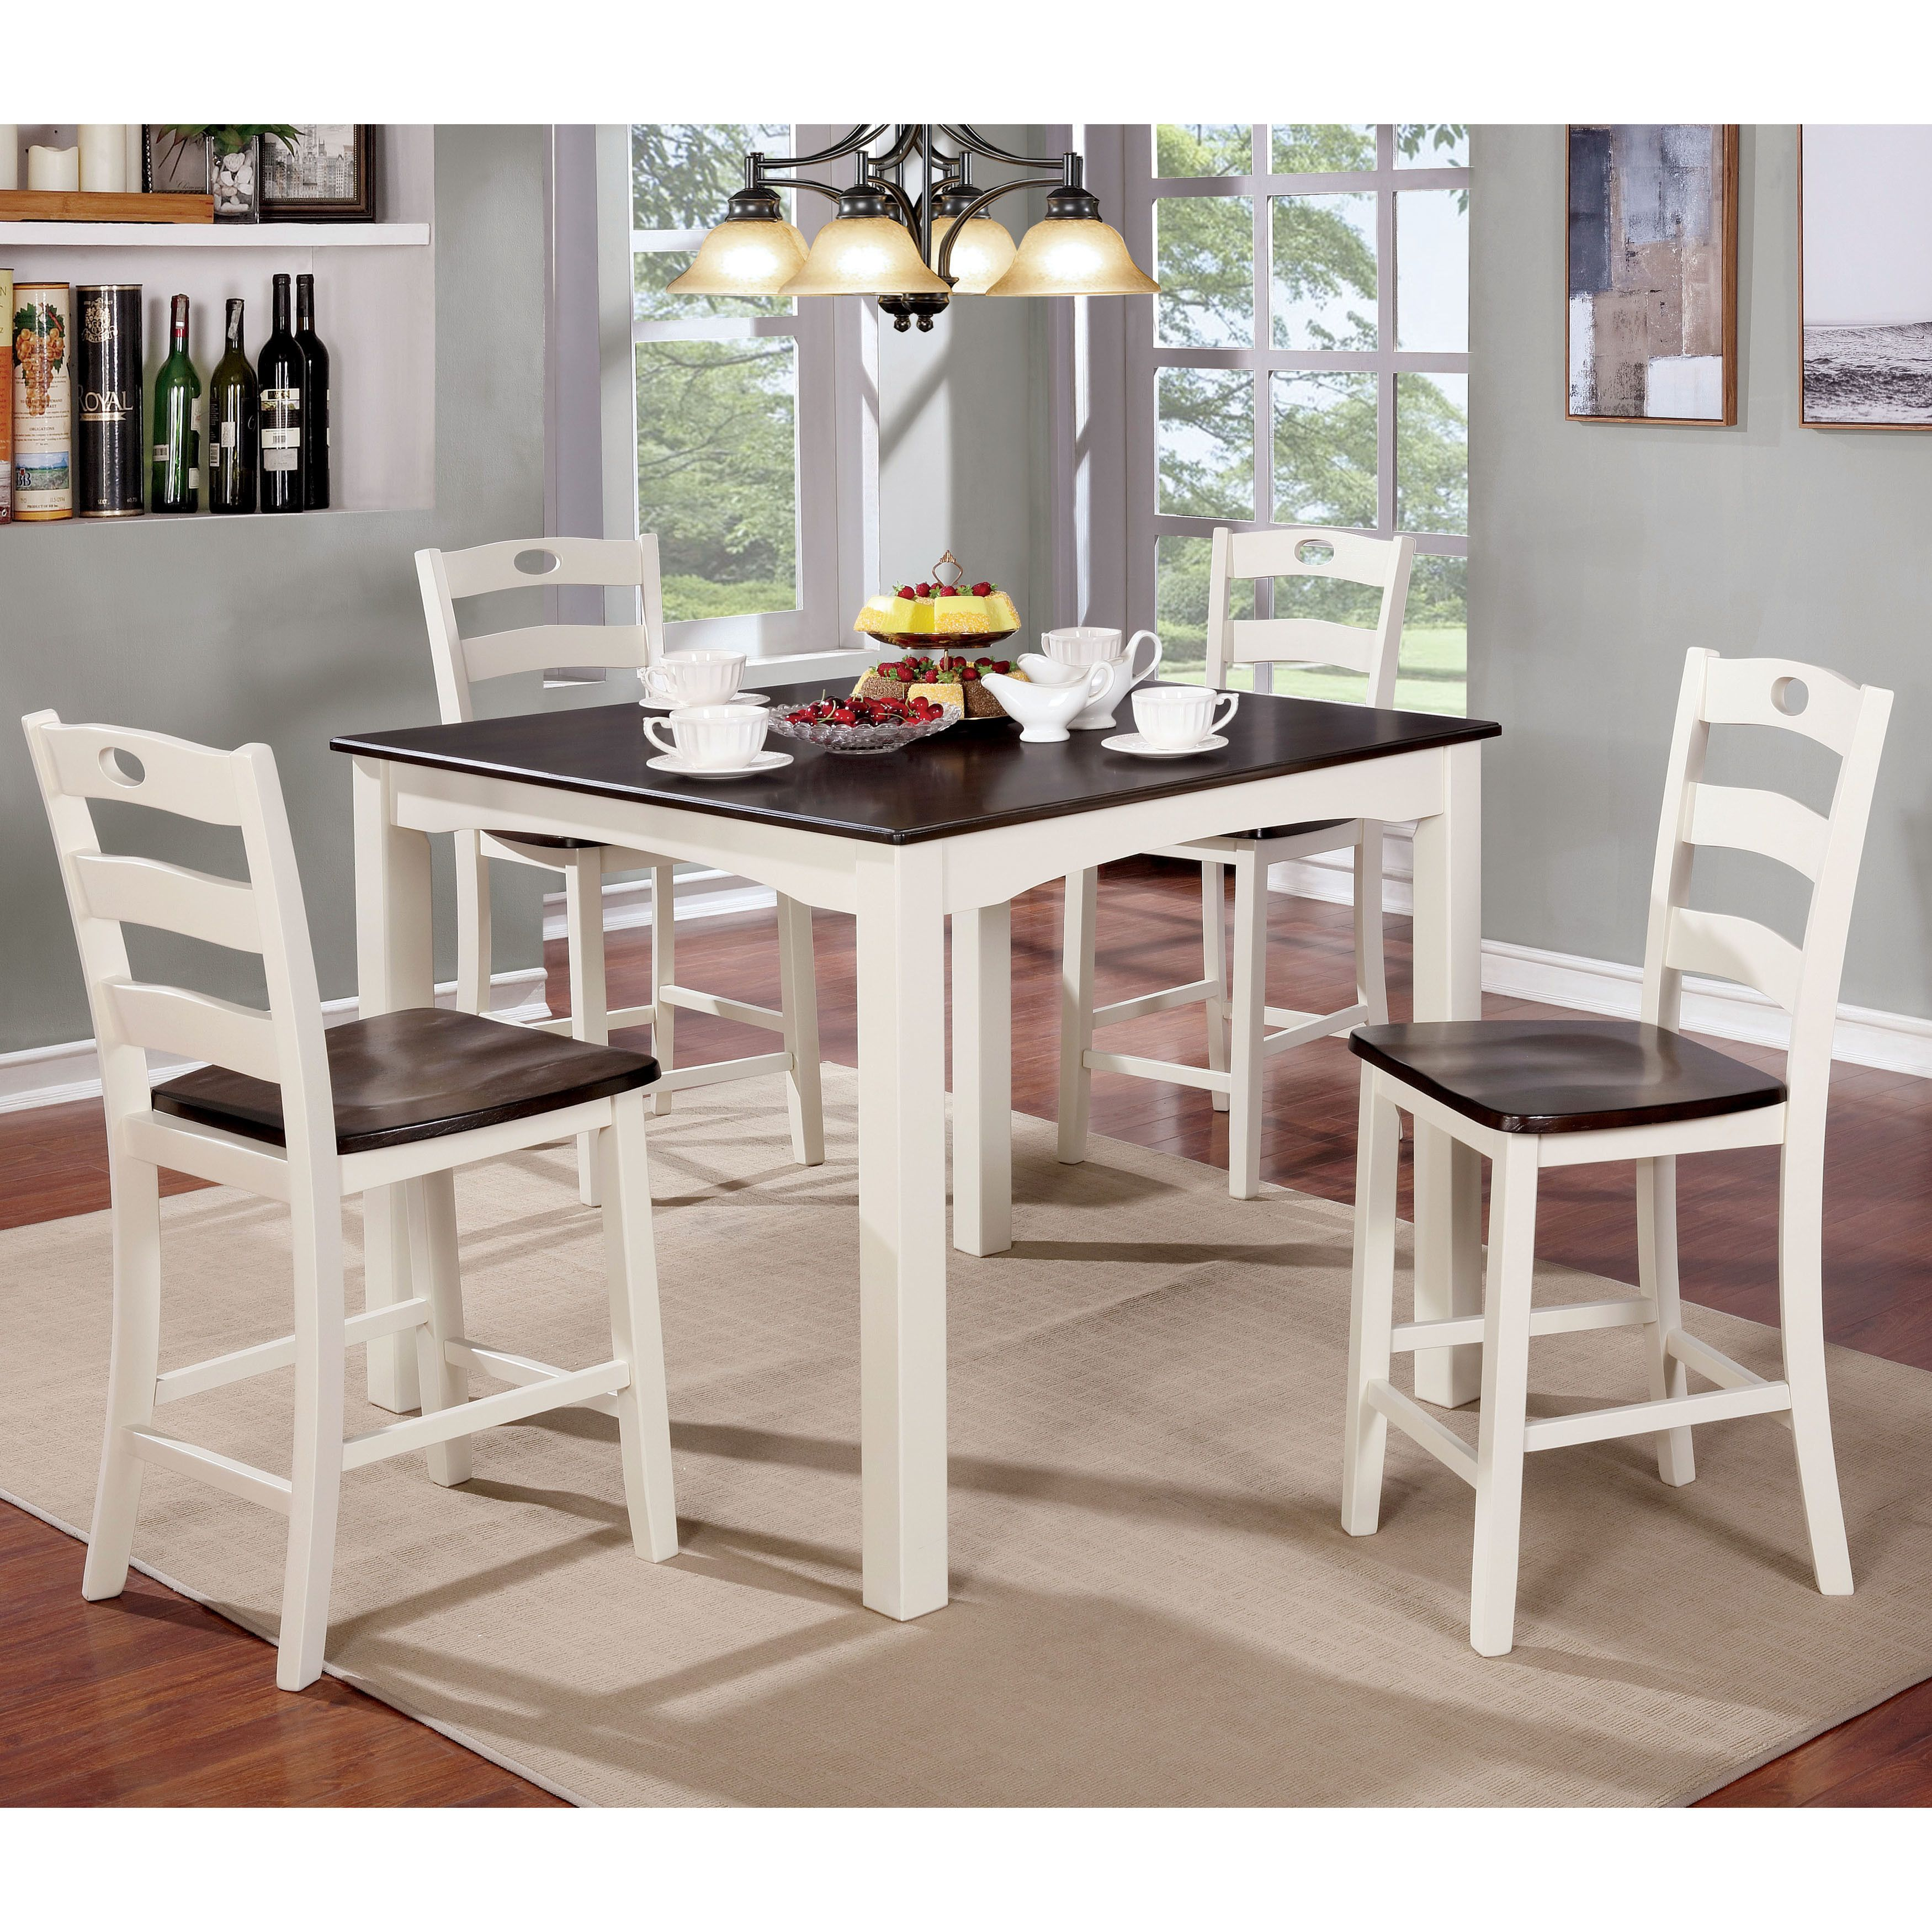 Furniture Of America Bellorama Cottage Style 5 Piece Two Tone